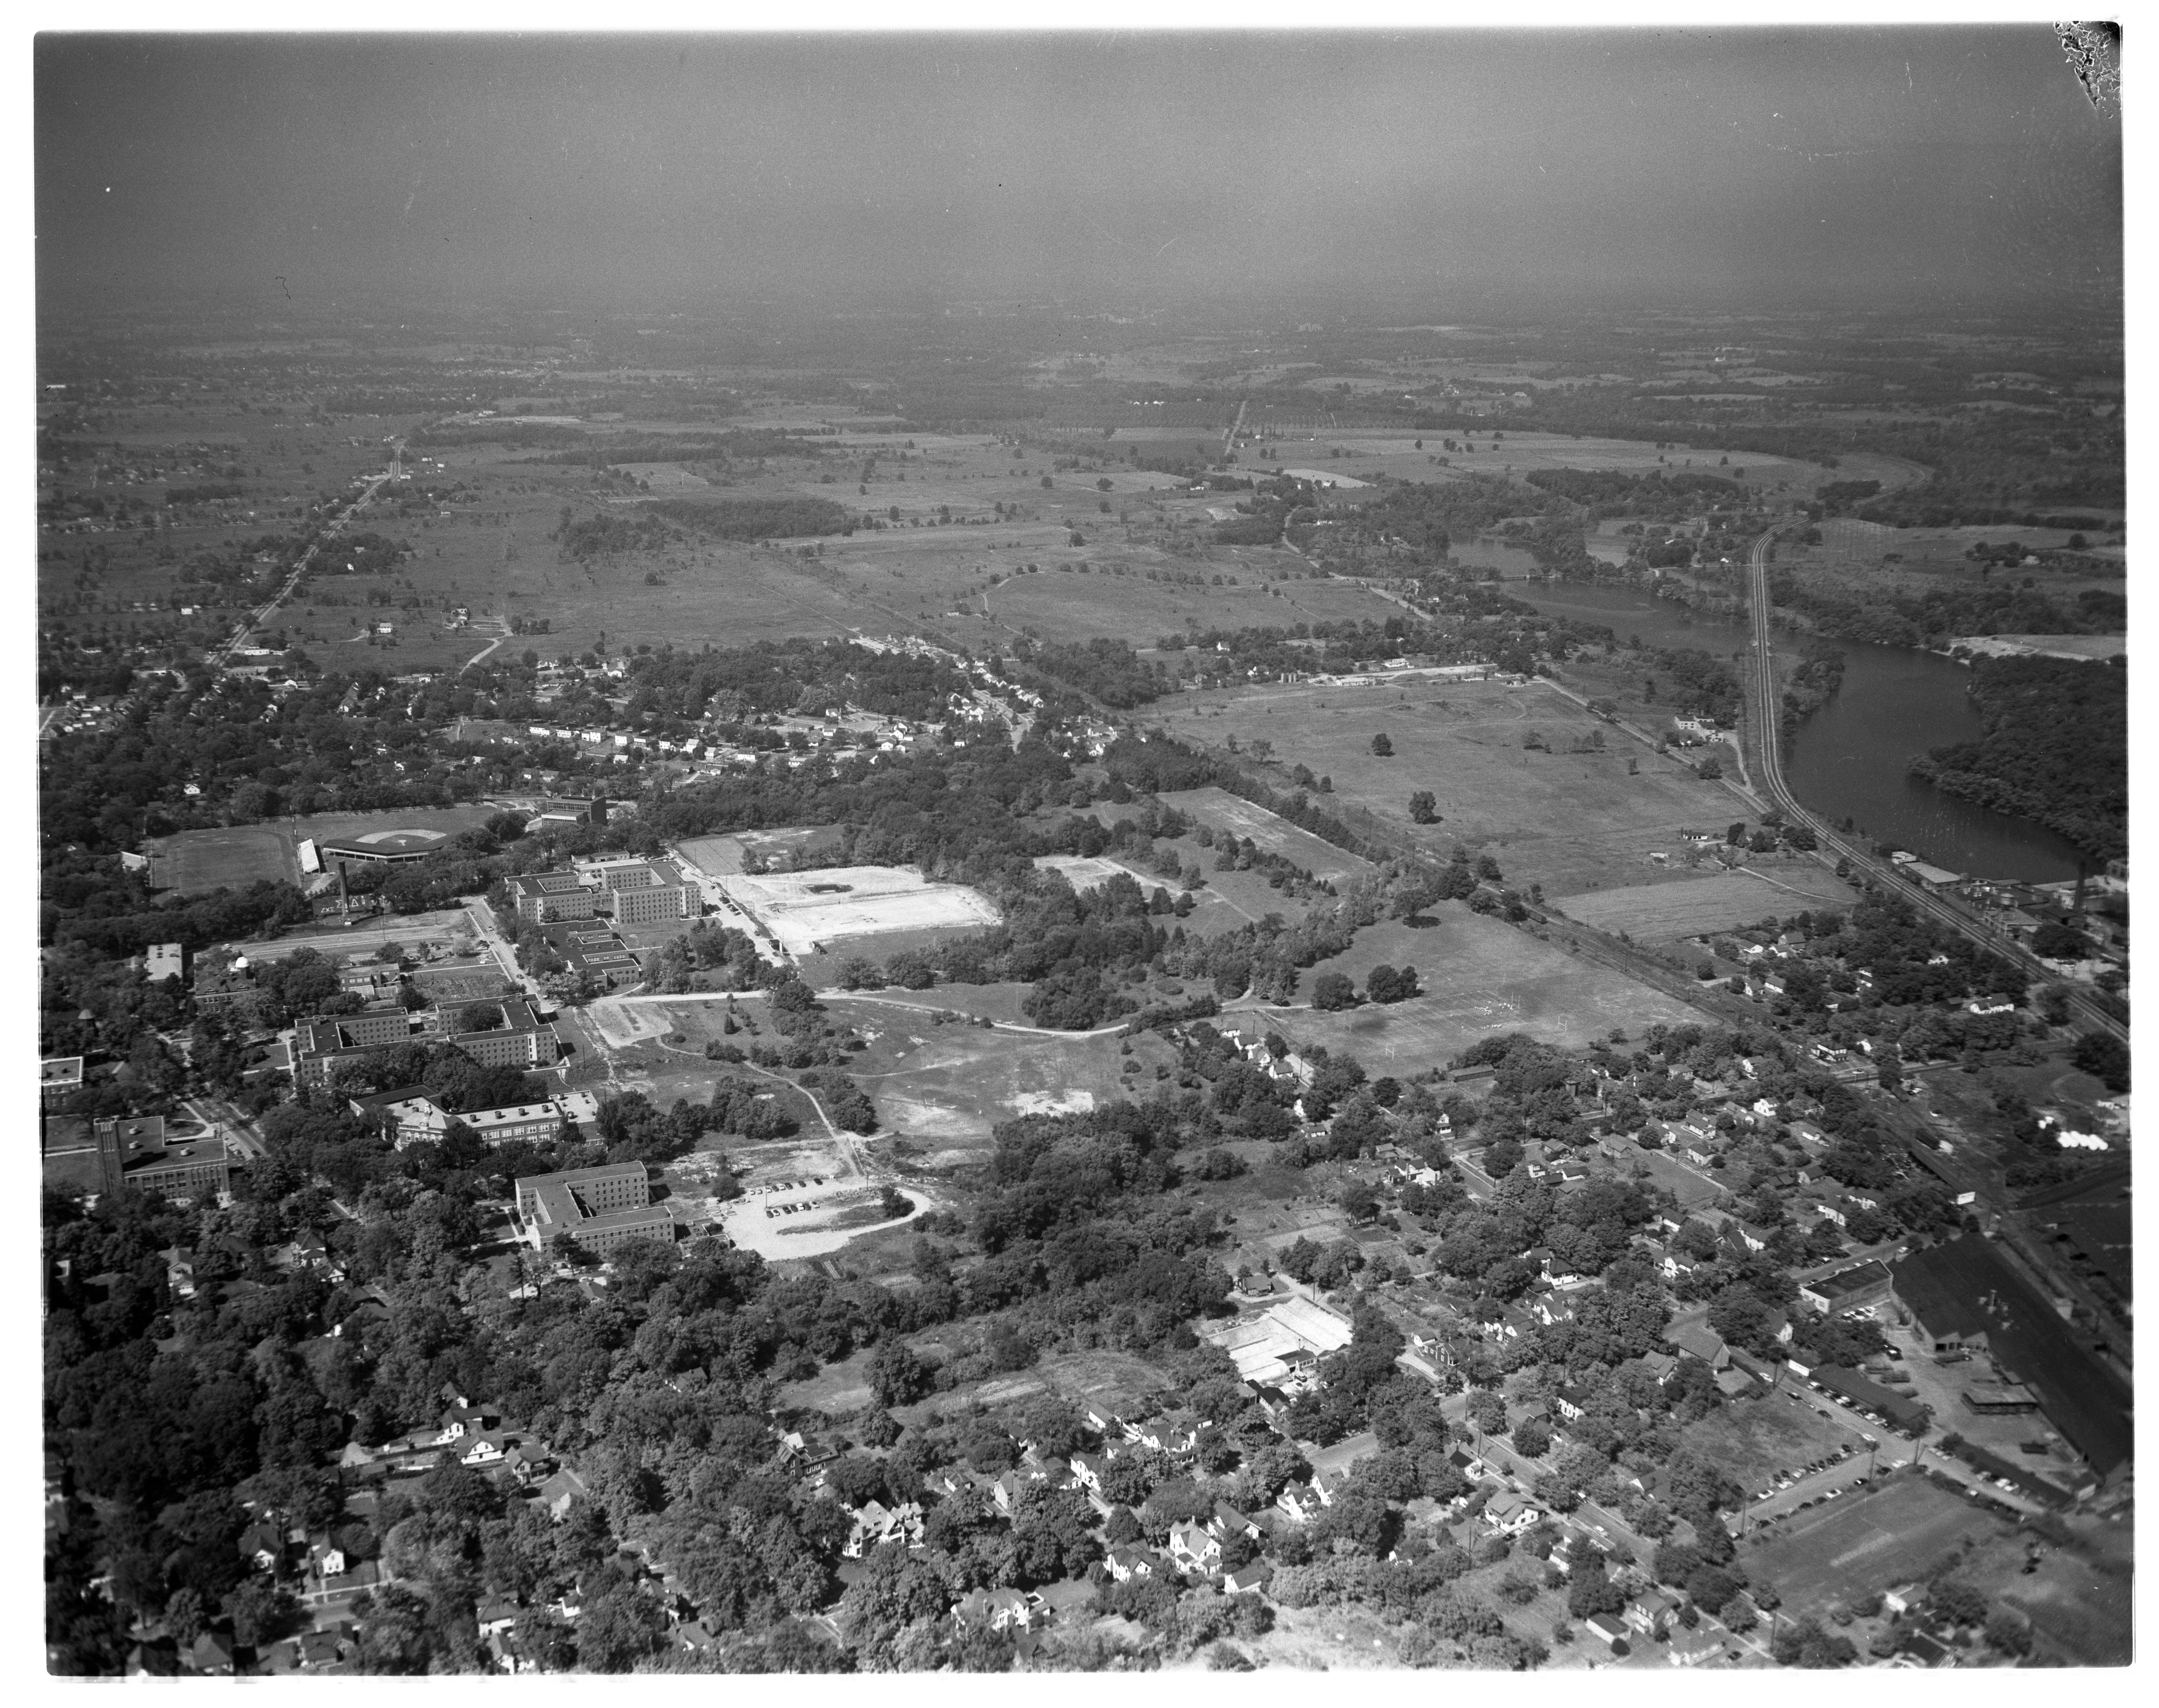 Aerial Photograph of Michigan State Normal College, Ypsilanti, September 1954 image